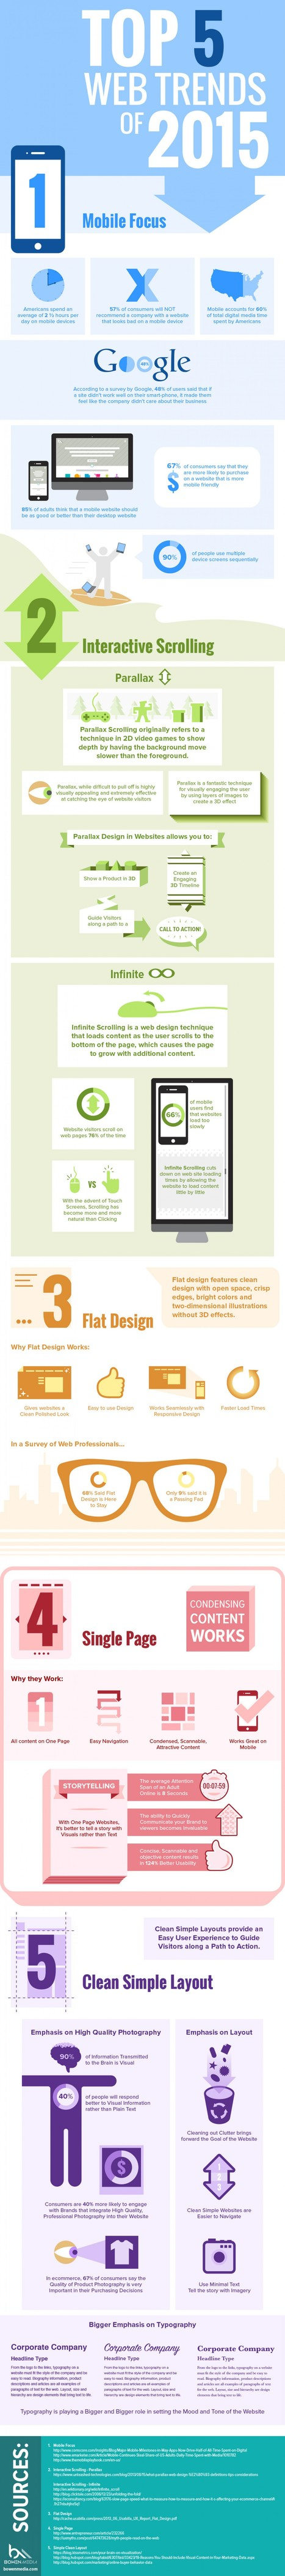 Top 5 Web Design Trends For 2015 | Infographic | Digital boards | Scoop.it